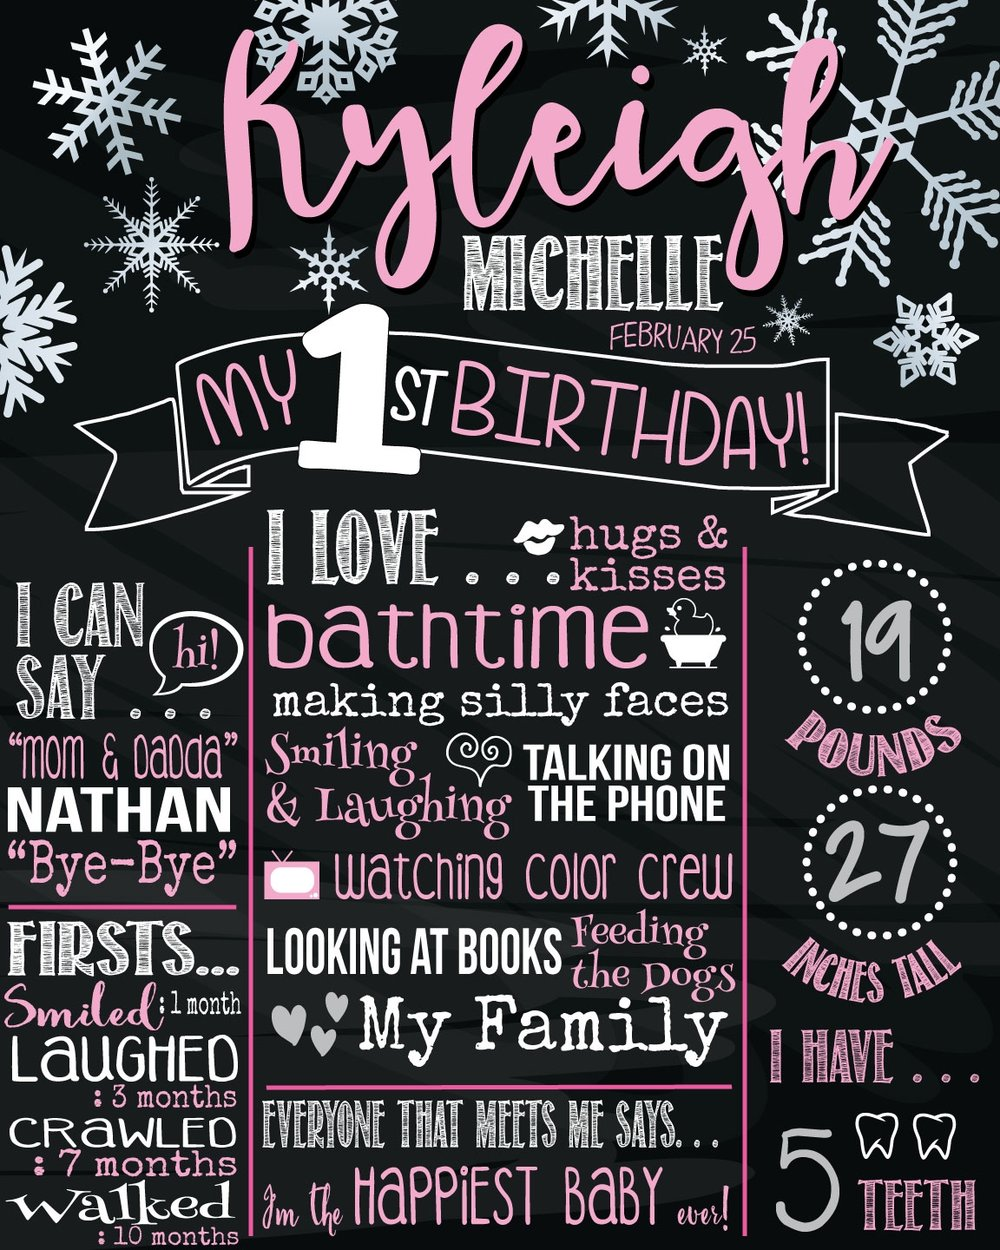 Kyleigh's 1st Birthday Poster